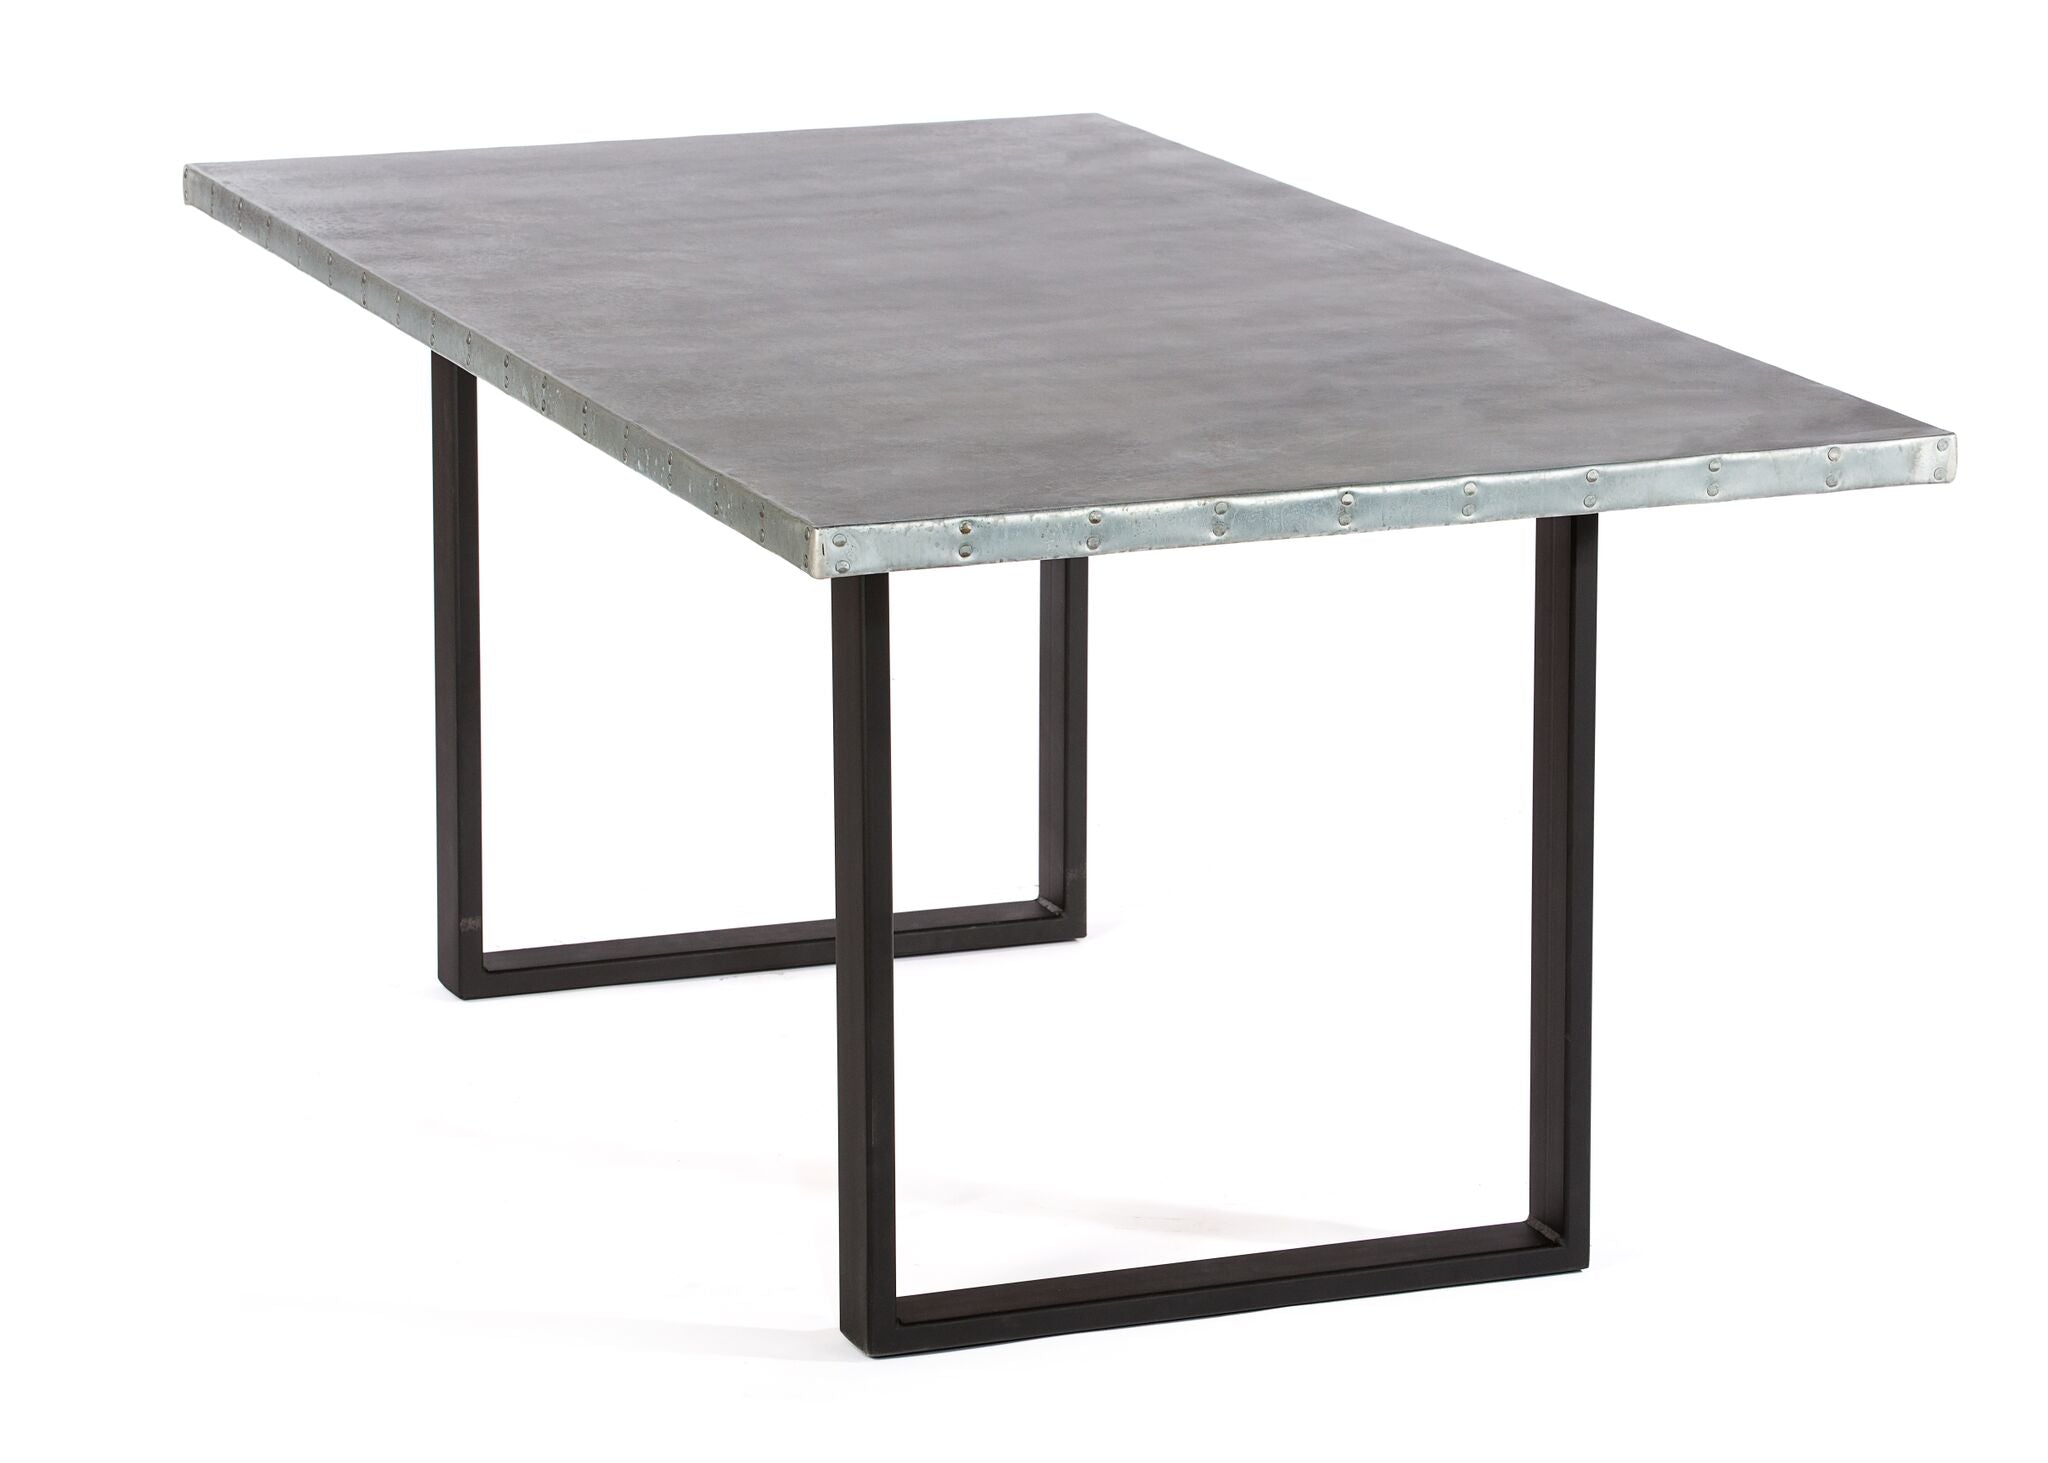 Zinc Rectangular Table | Maddox Table | CLASSIC | Natural Ash | CUSTOM SIZE L 60.00 W 37.00 H undefined | kingston-krafts-zinc-tables.